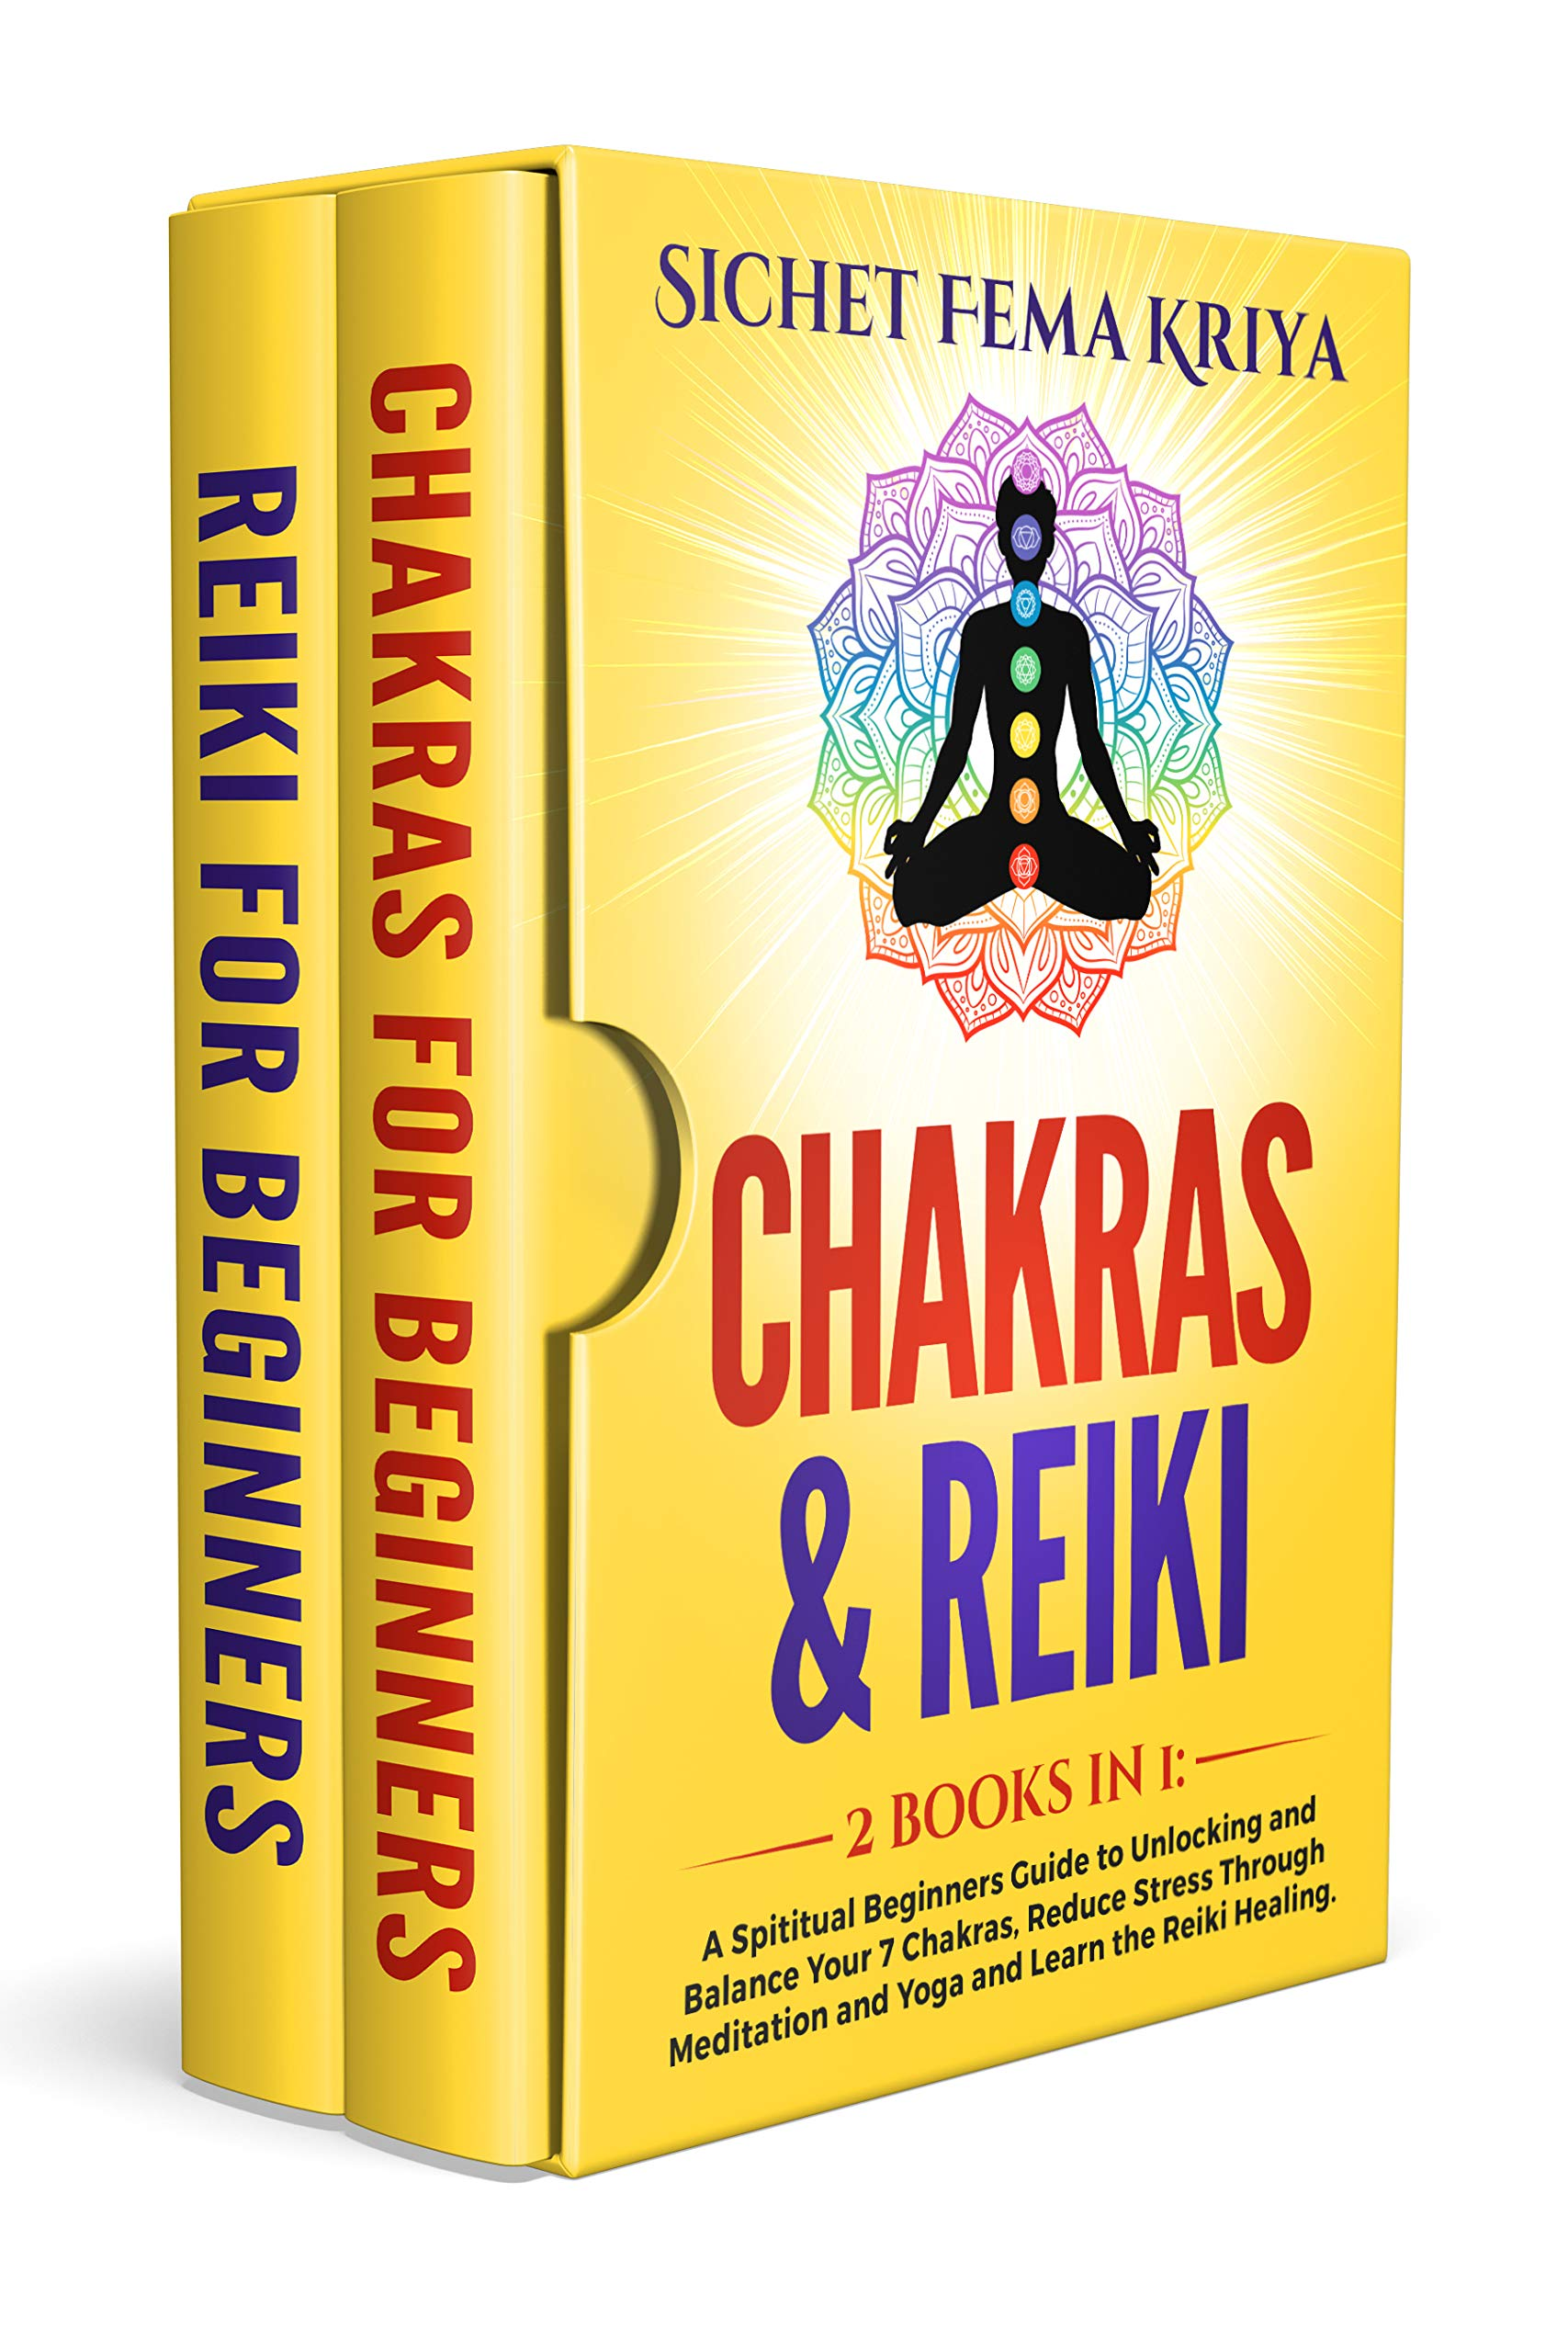 Chakras & Reiki: 2 books in 1: A Spiritual Beginners Guide to Unlocking and Balance Your 7 Chakras, Reduce Stress Through Meditation and Yoga and Learn the Reiki Healing.